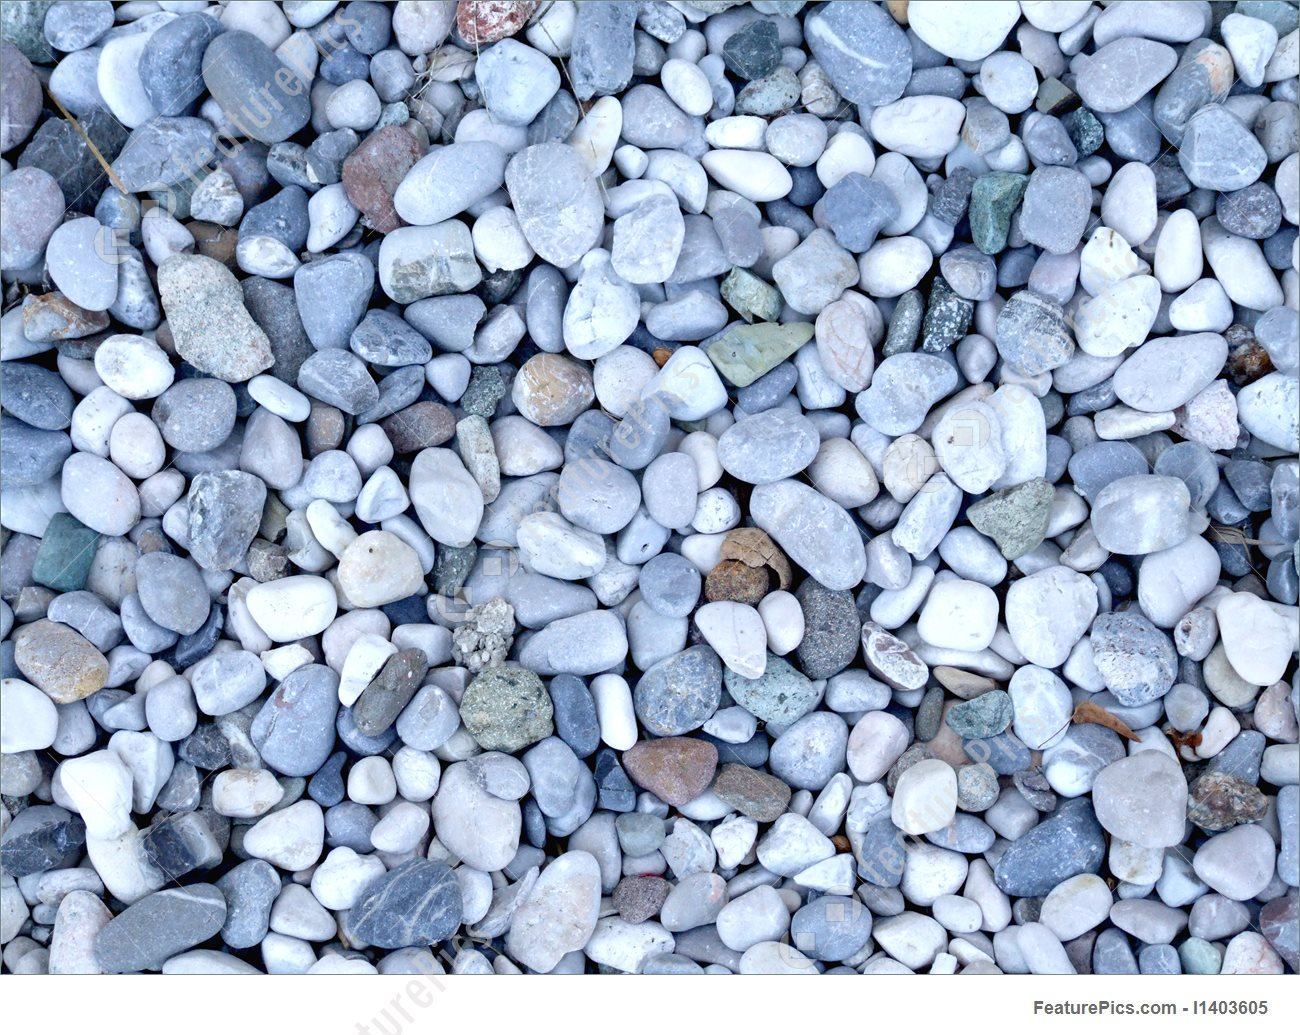 Image Of Blue And White River Gravel.